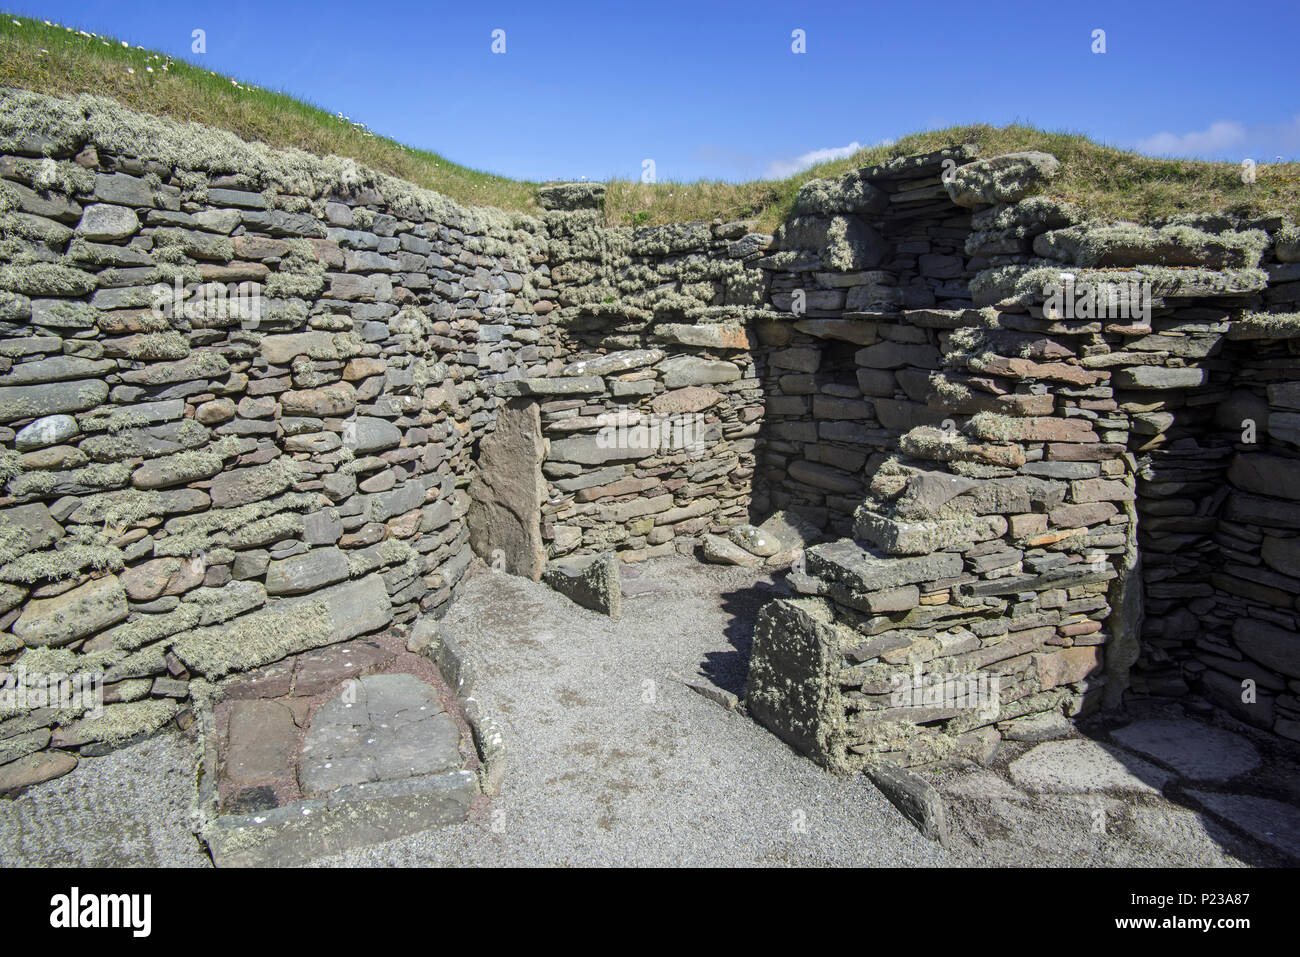 Chamber at Jarlshof, archaeological site showing 2500 BC prehistoric and Norse settlements at Sumburgh Head, Shetland Islands, Scotland, UK - Stock Image